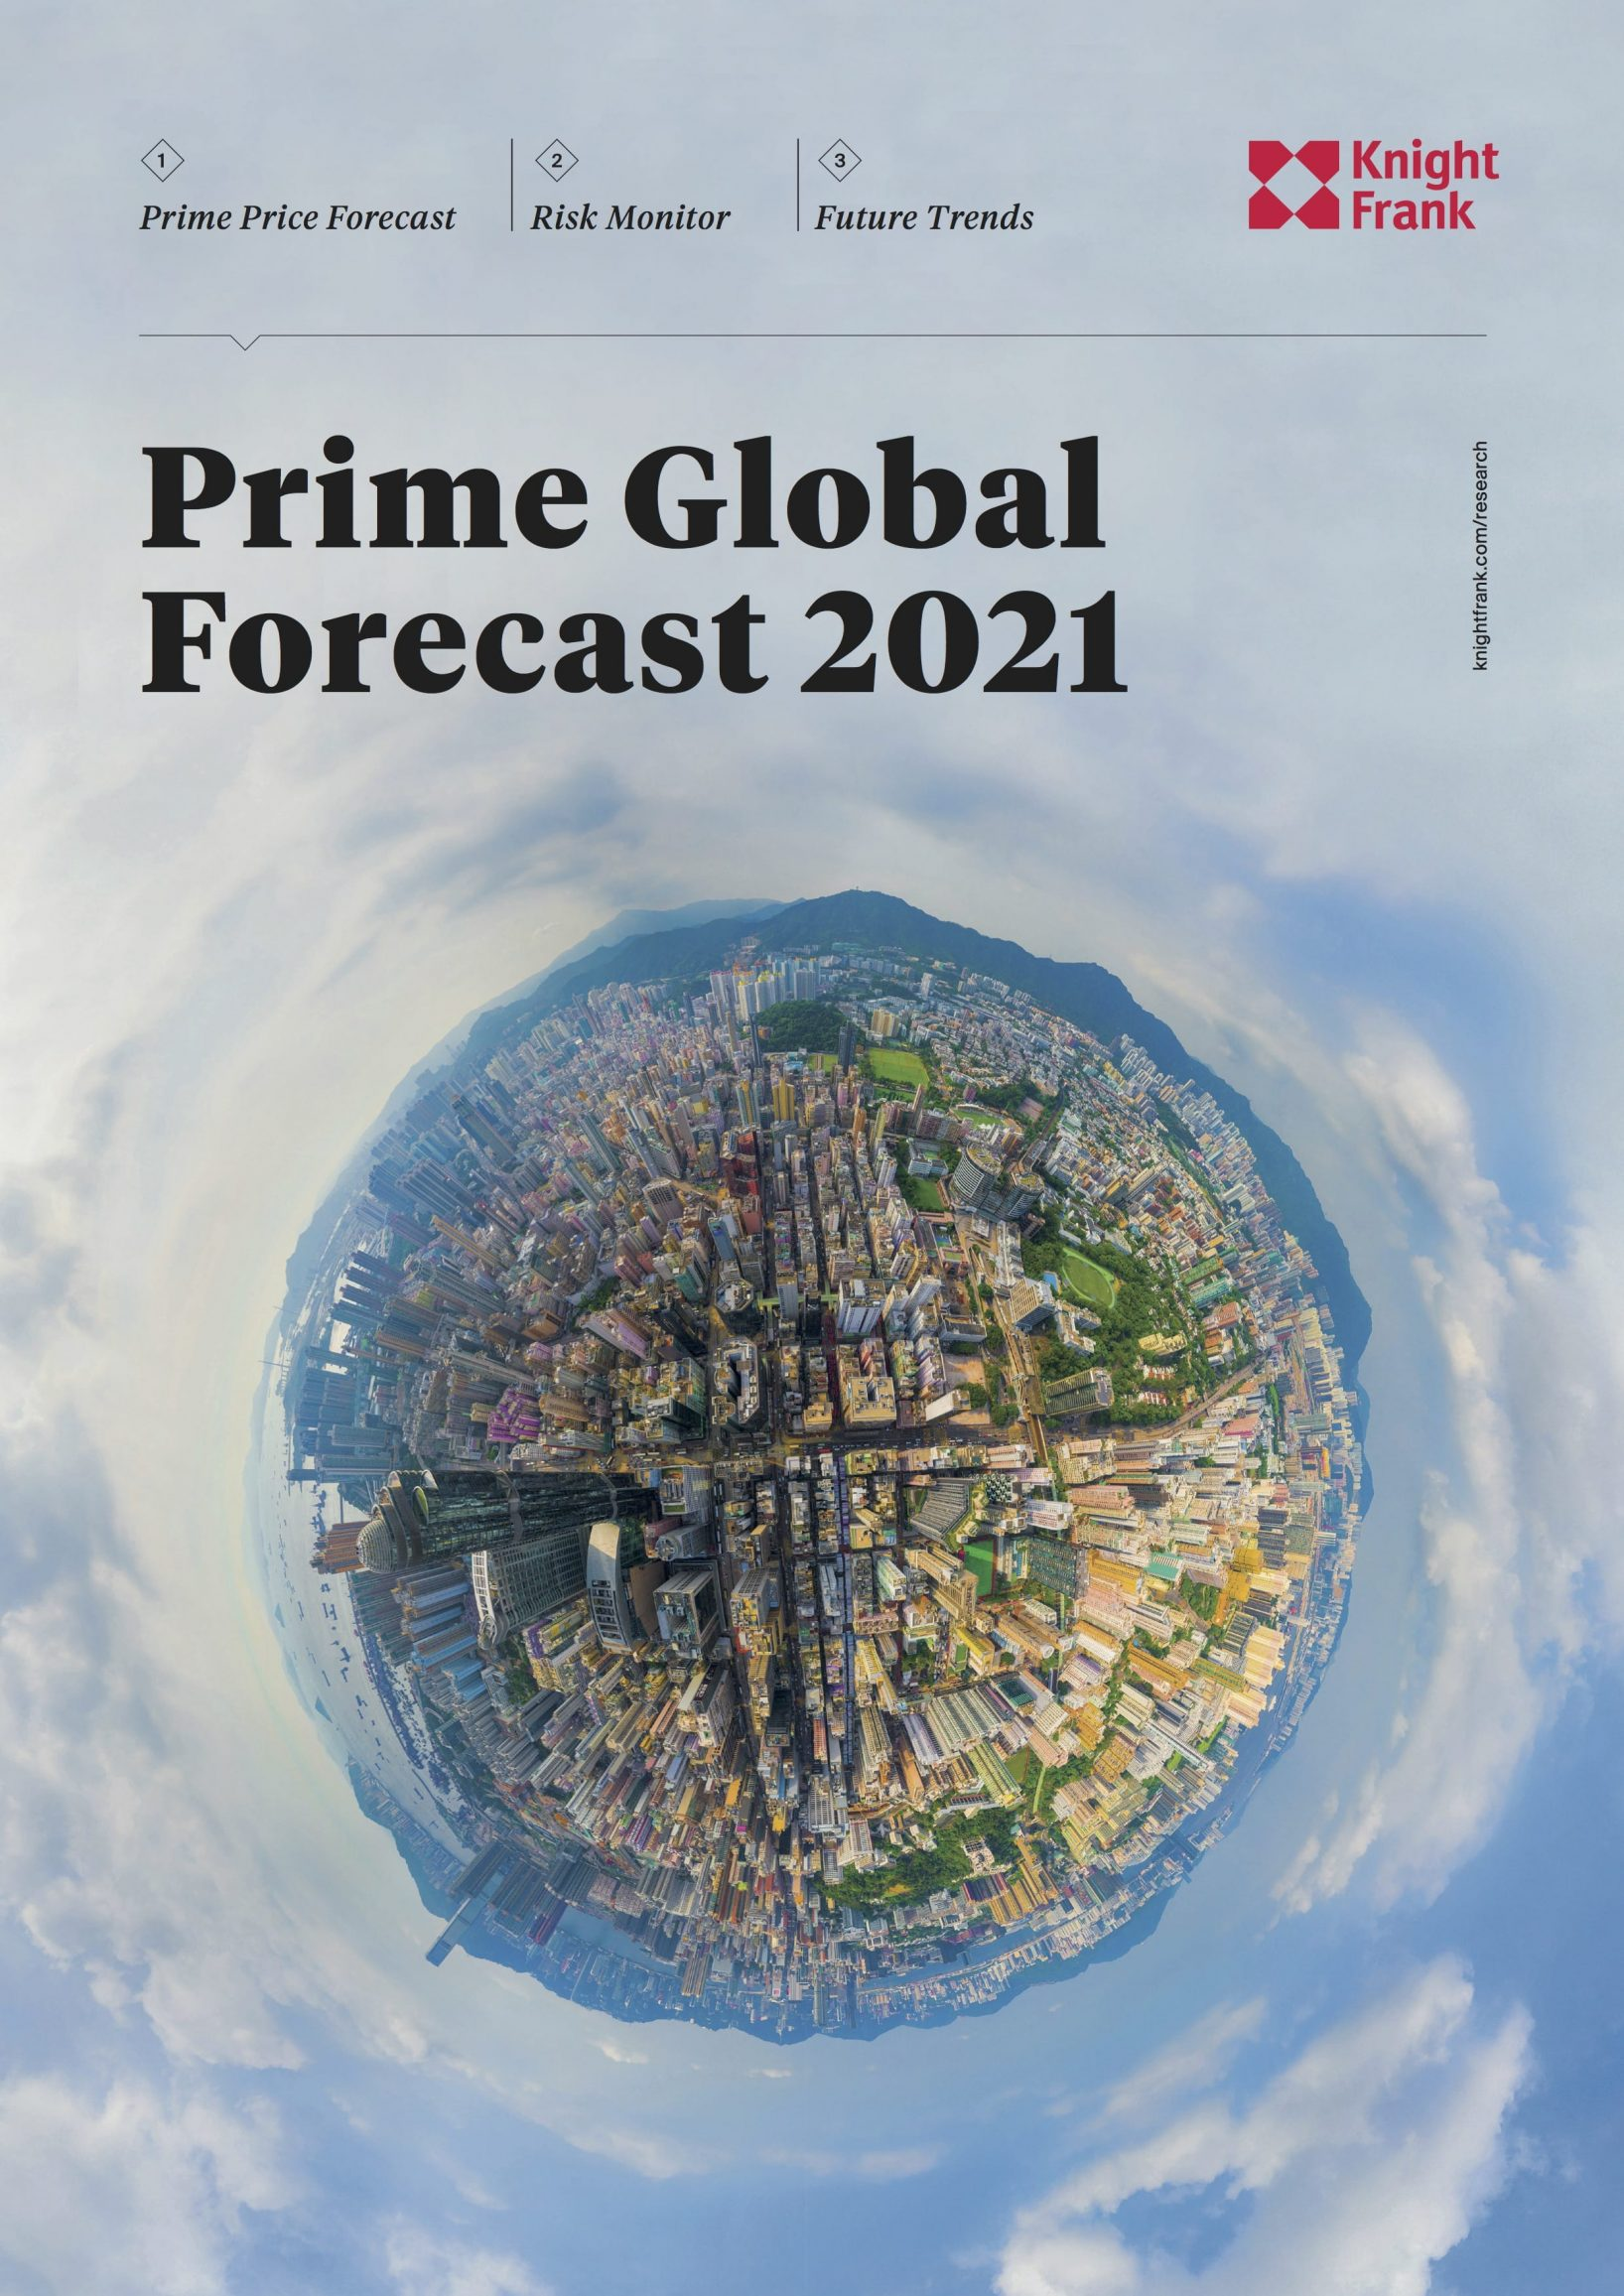 Knight Frank's Prime Global Forecast for 2021